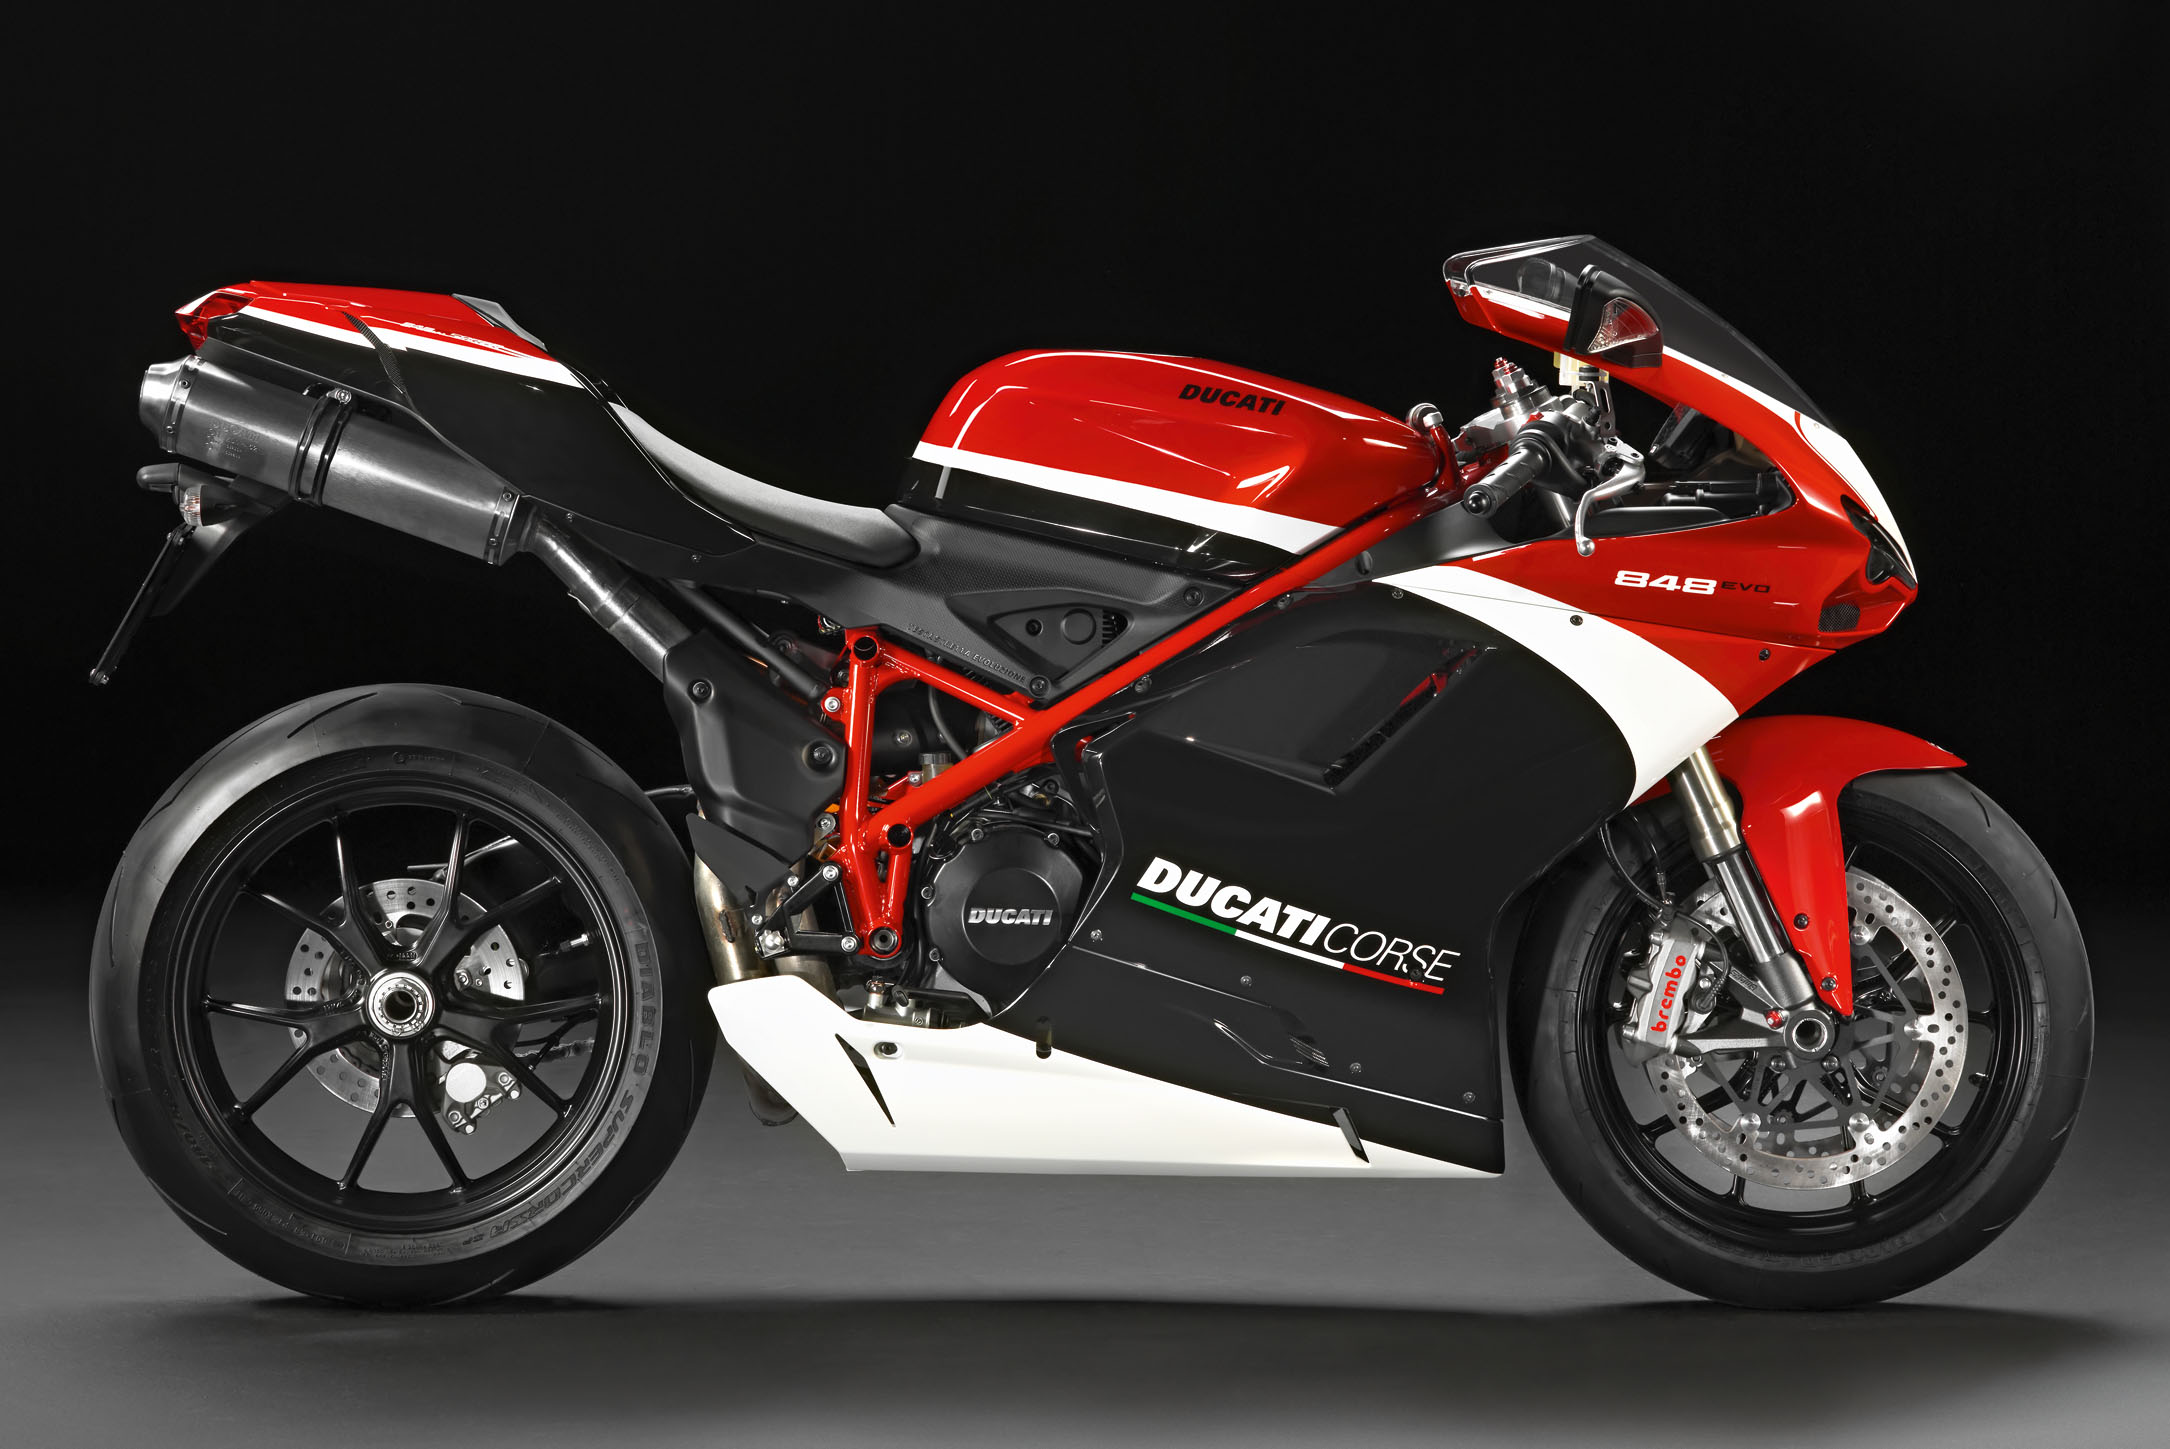 Ducati 848 gets traction control | Visordown